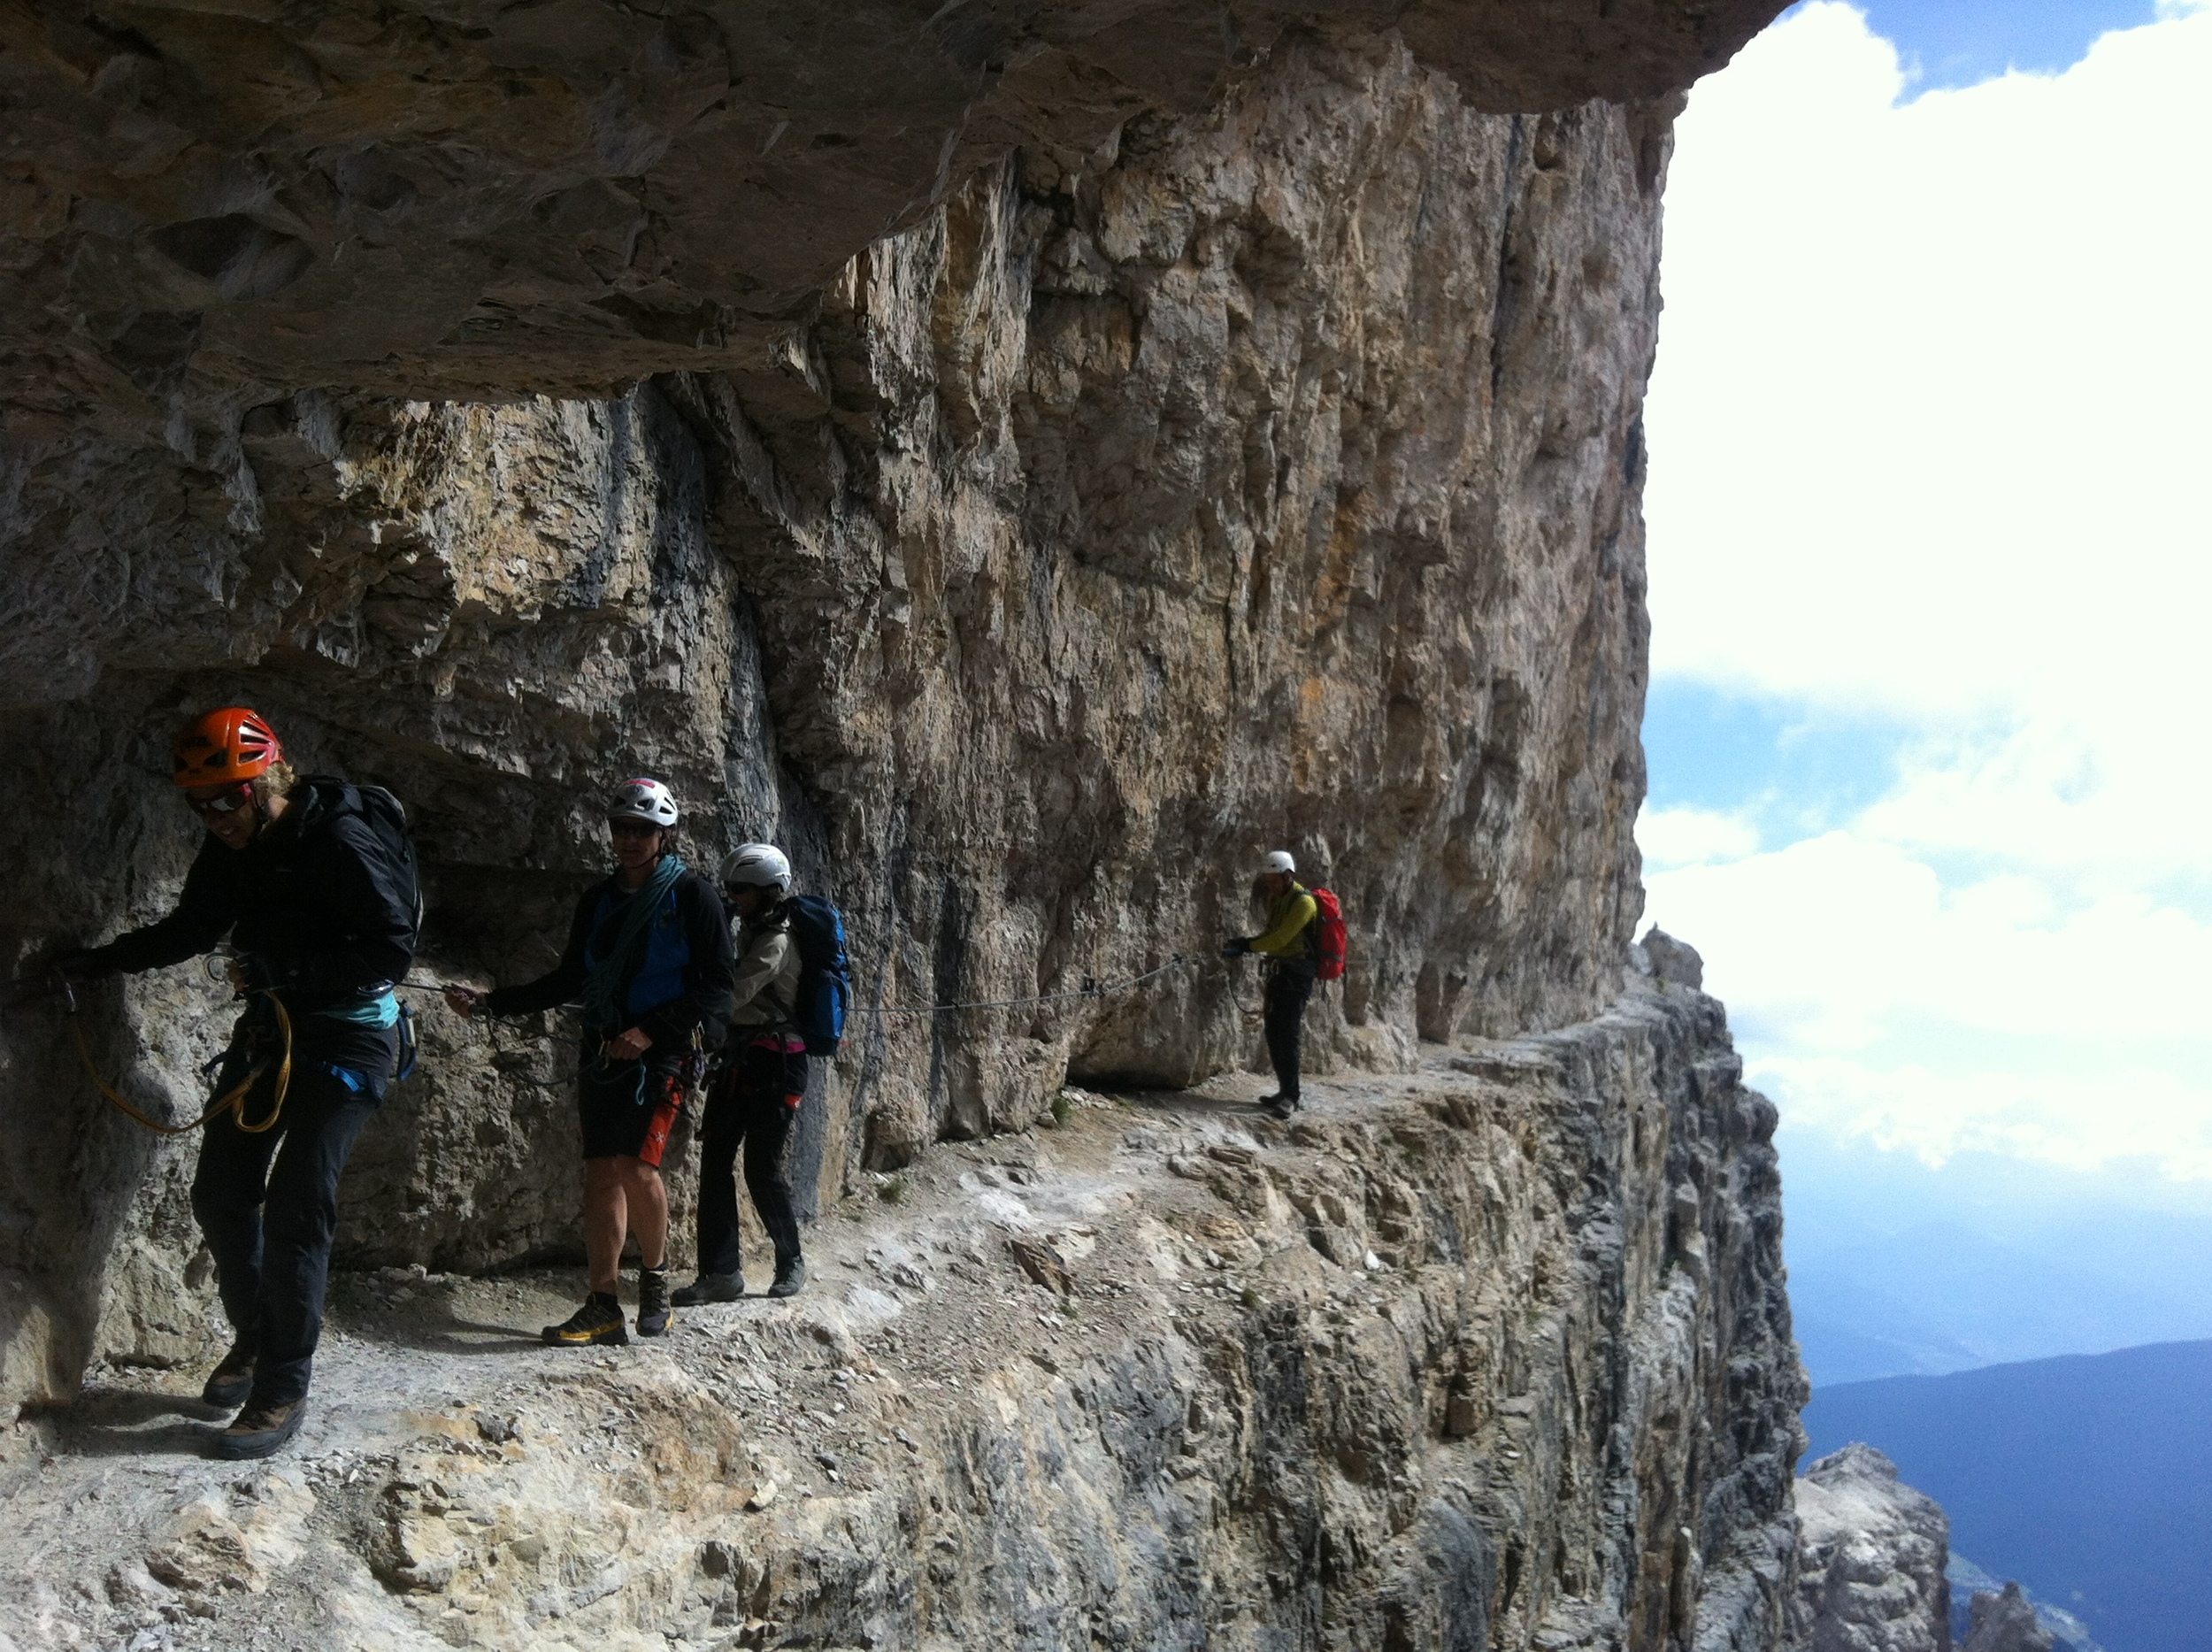 Via Ferrata - day trips and tours